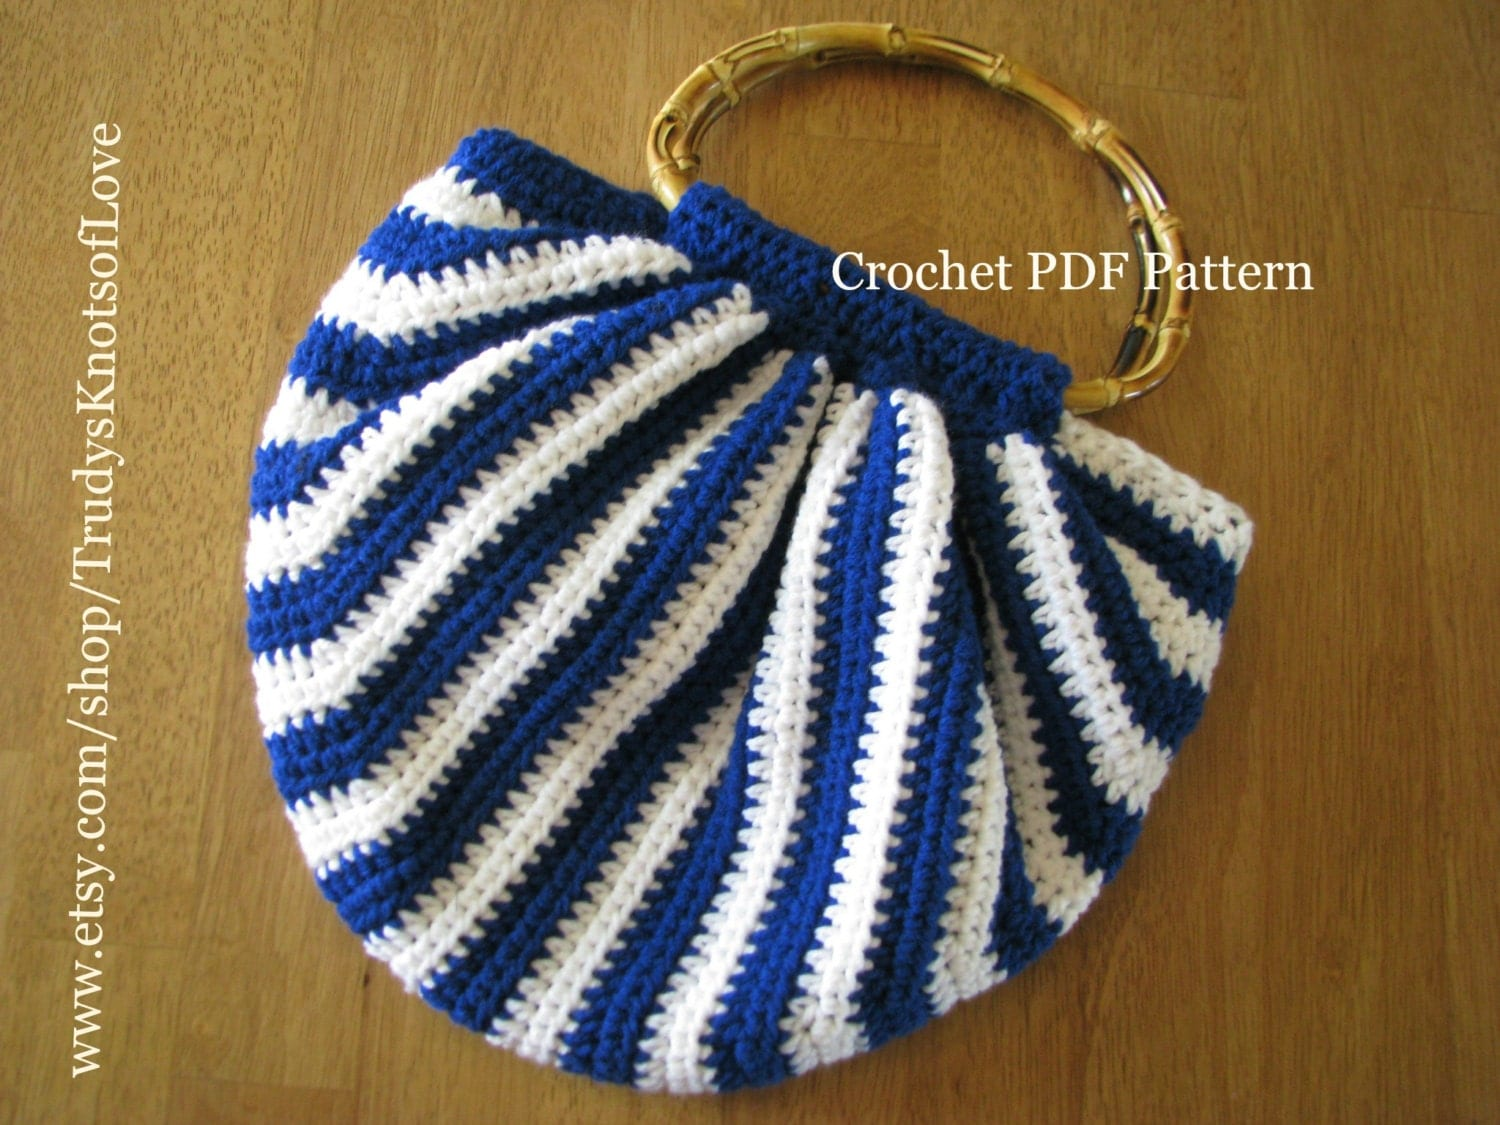 Crochet Purse Patterns Pdf Confederated Tribes Of The Umatilla Indian Reservation